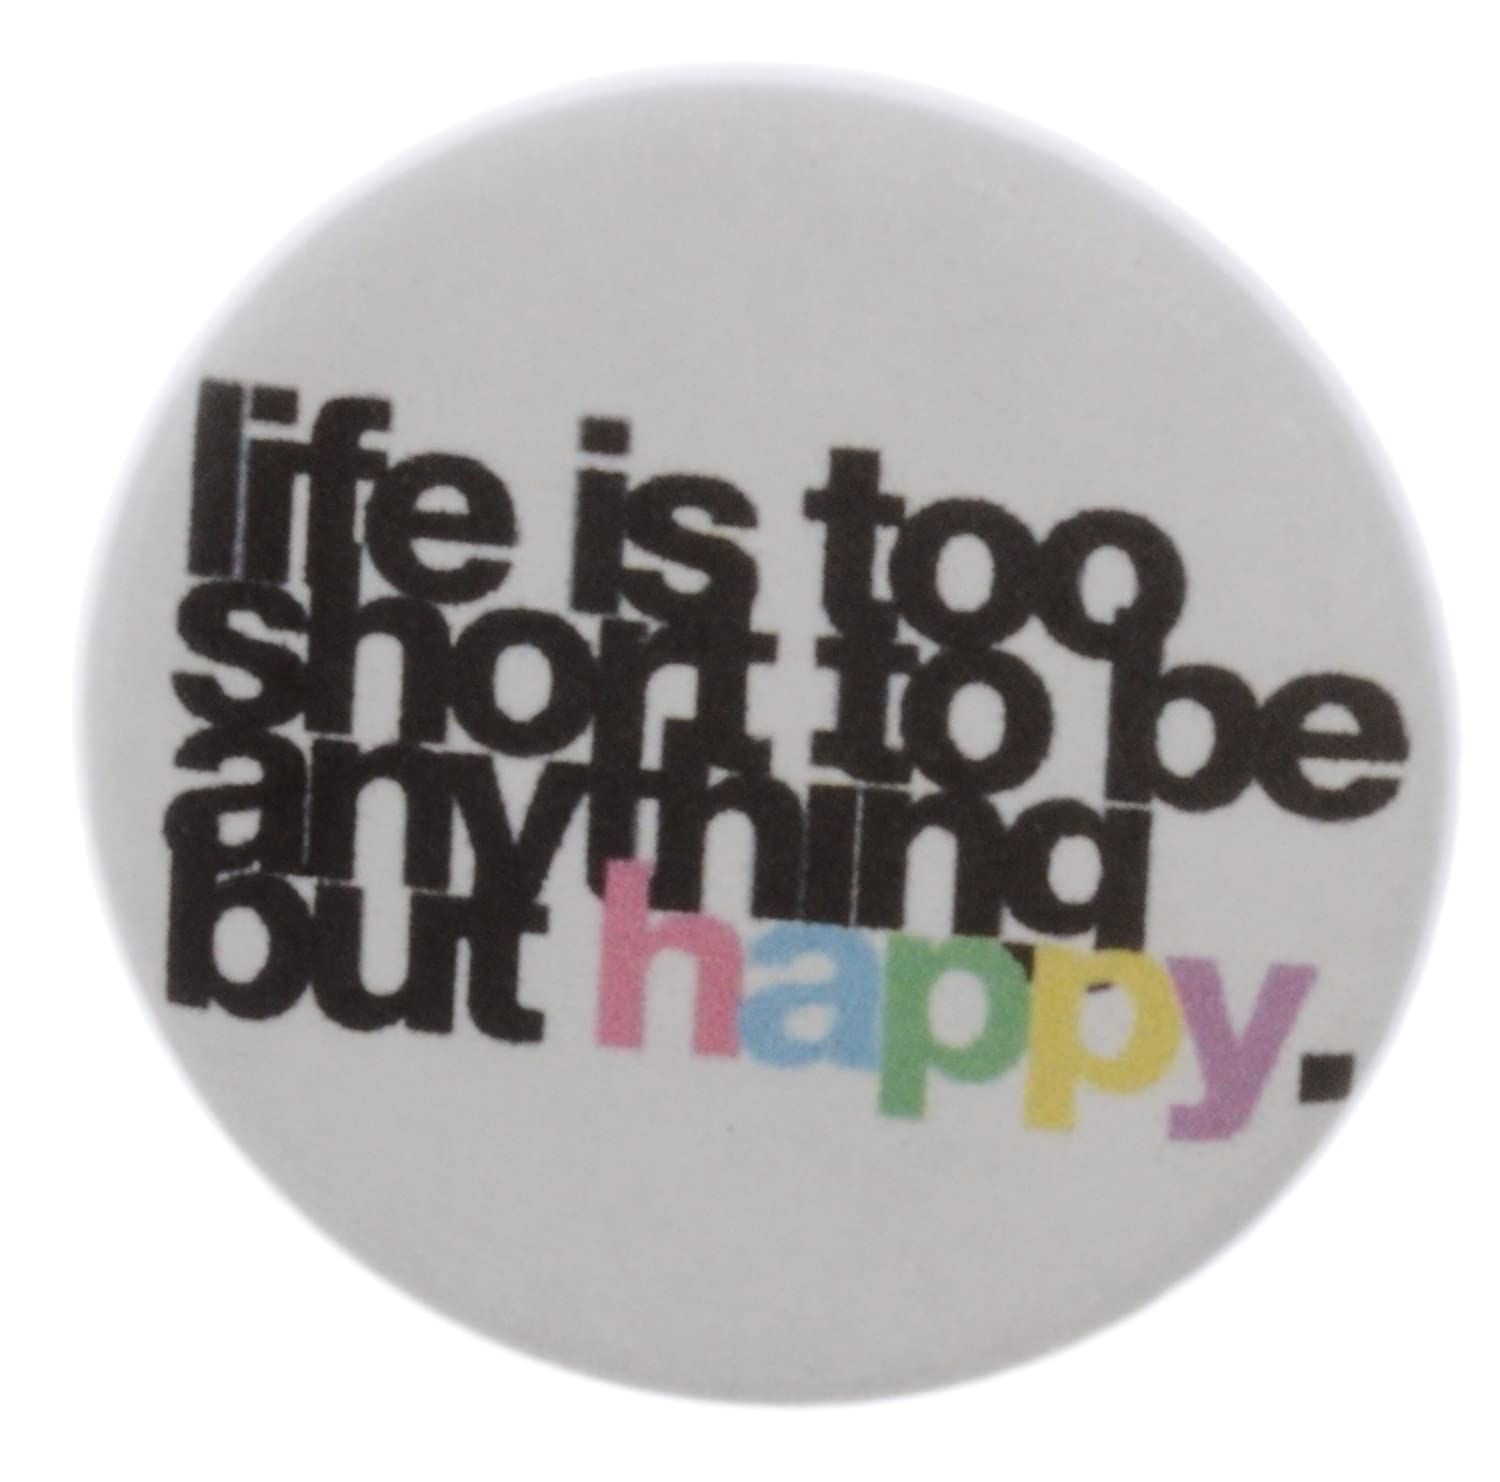 LIFE IS TOO SHORT TO BE ANYTHING BUT HAPPY Pinback Button 1.25 Pin / Badge to be too куртка косуха для девочки tf15088 розовый to be too